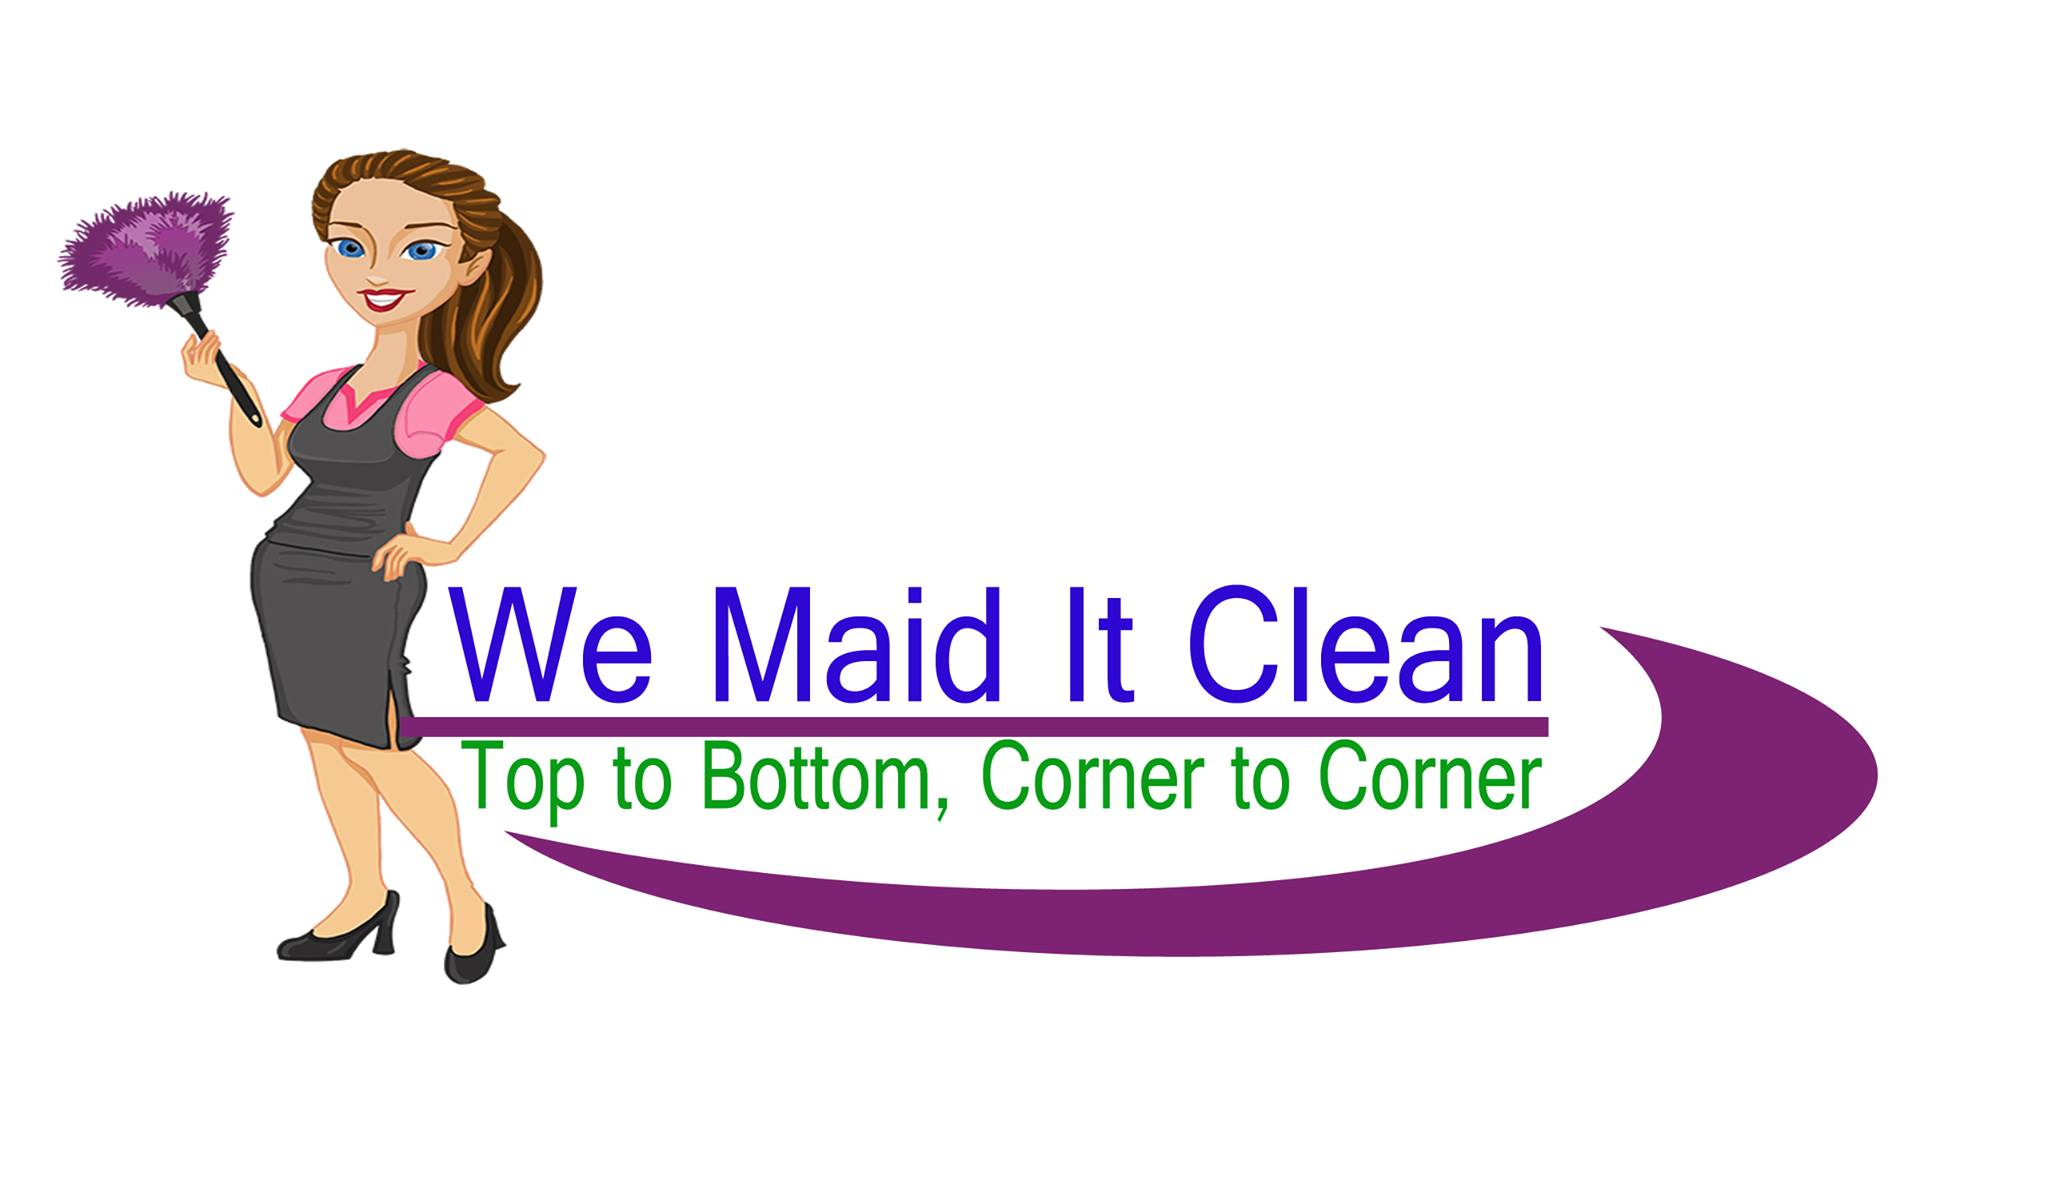 We Maid It Clean